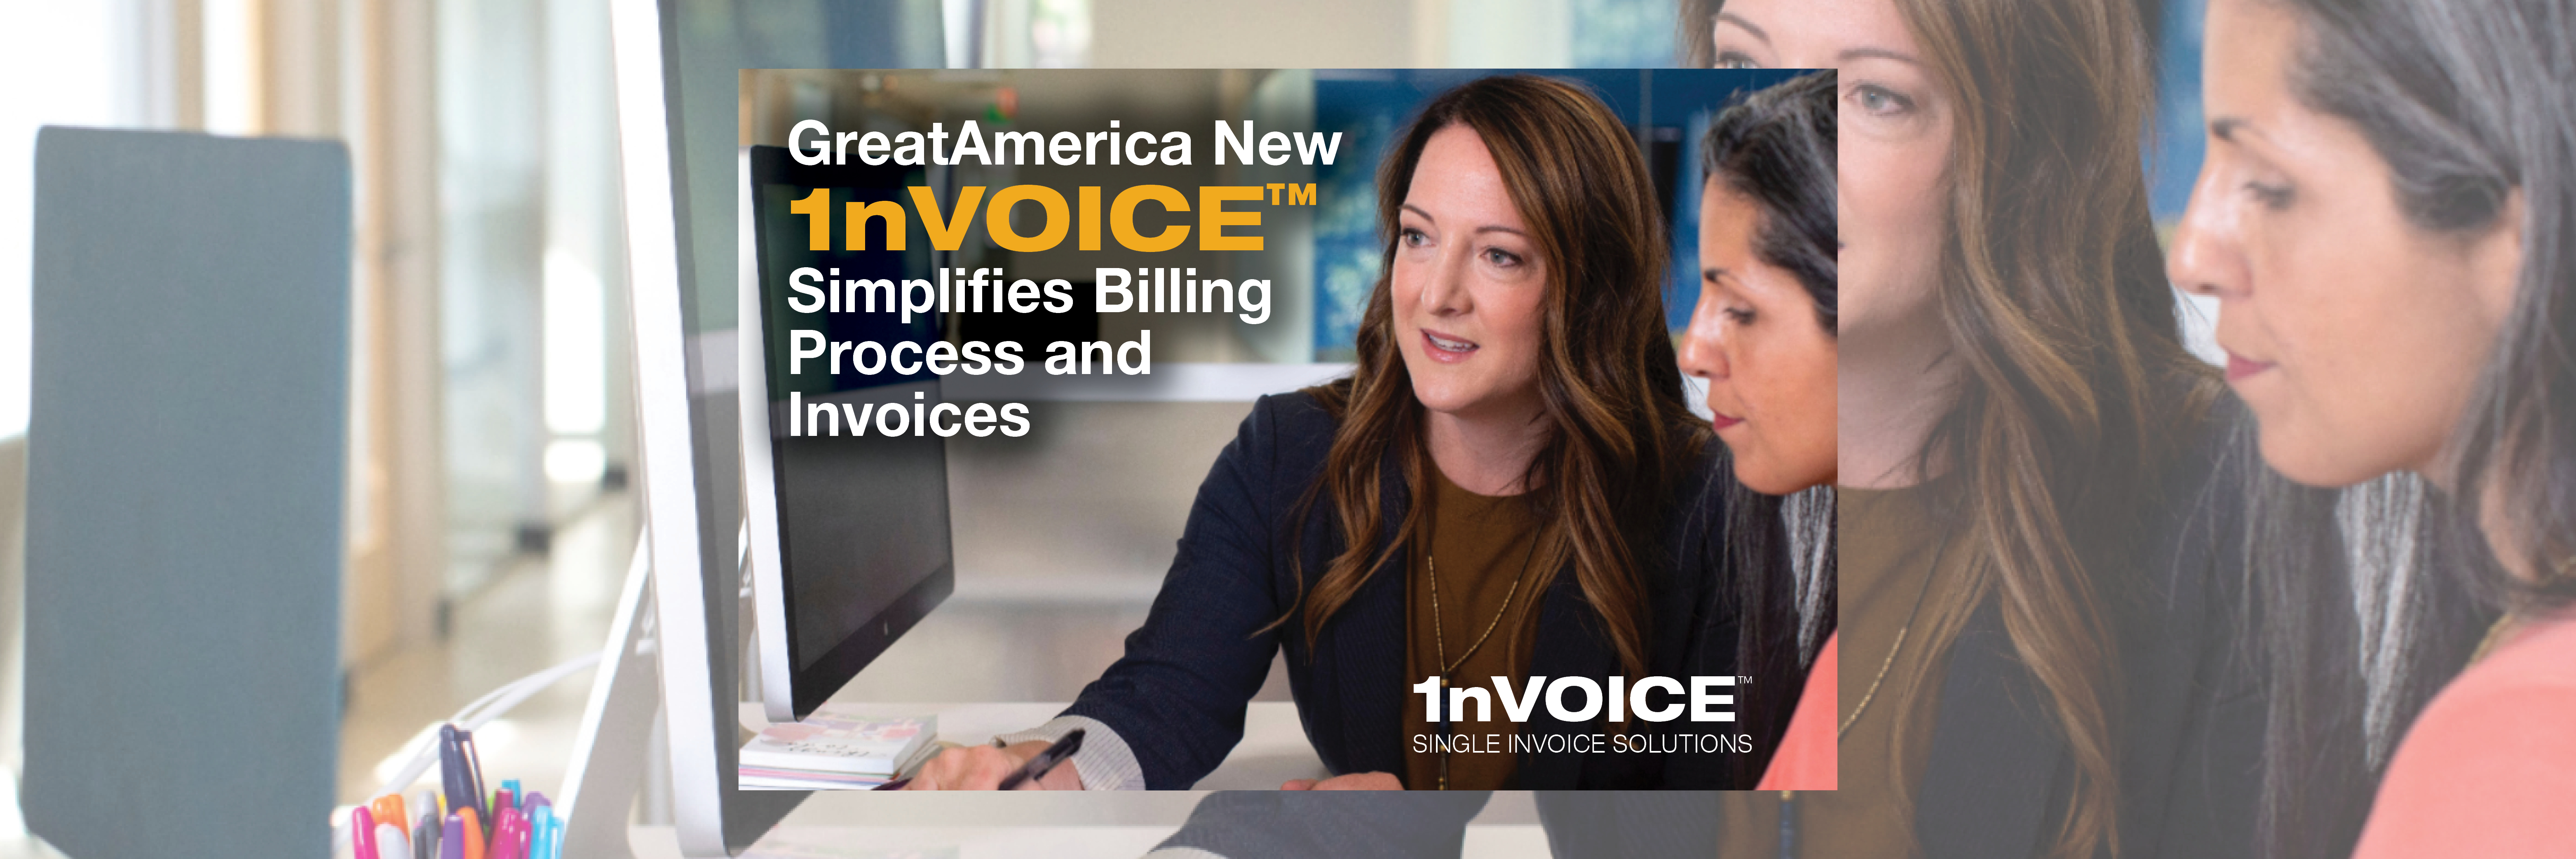 GreatAmerica New 1nVOICE™ Simplifies Billing Process and Invoices